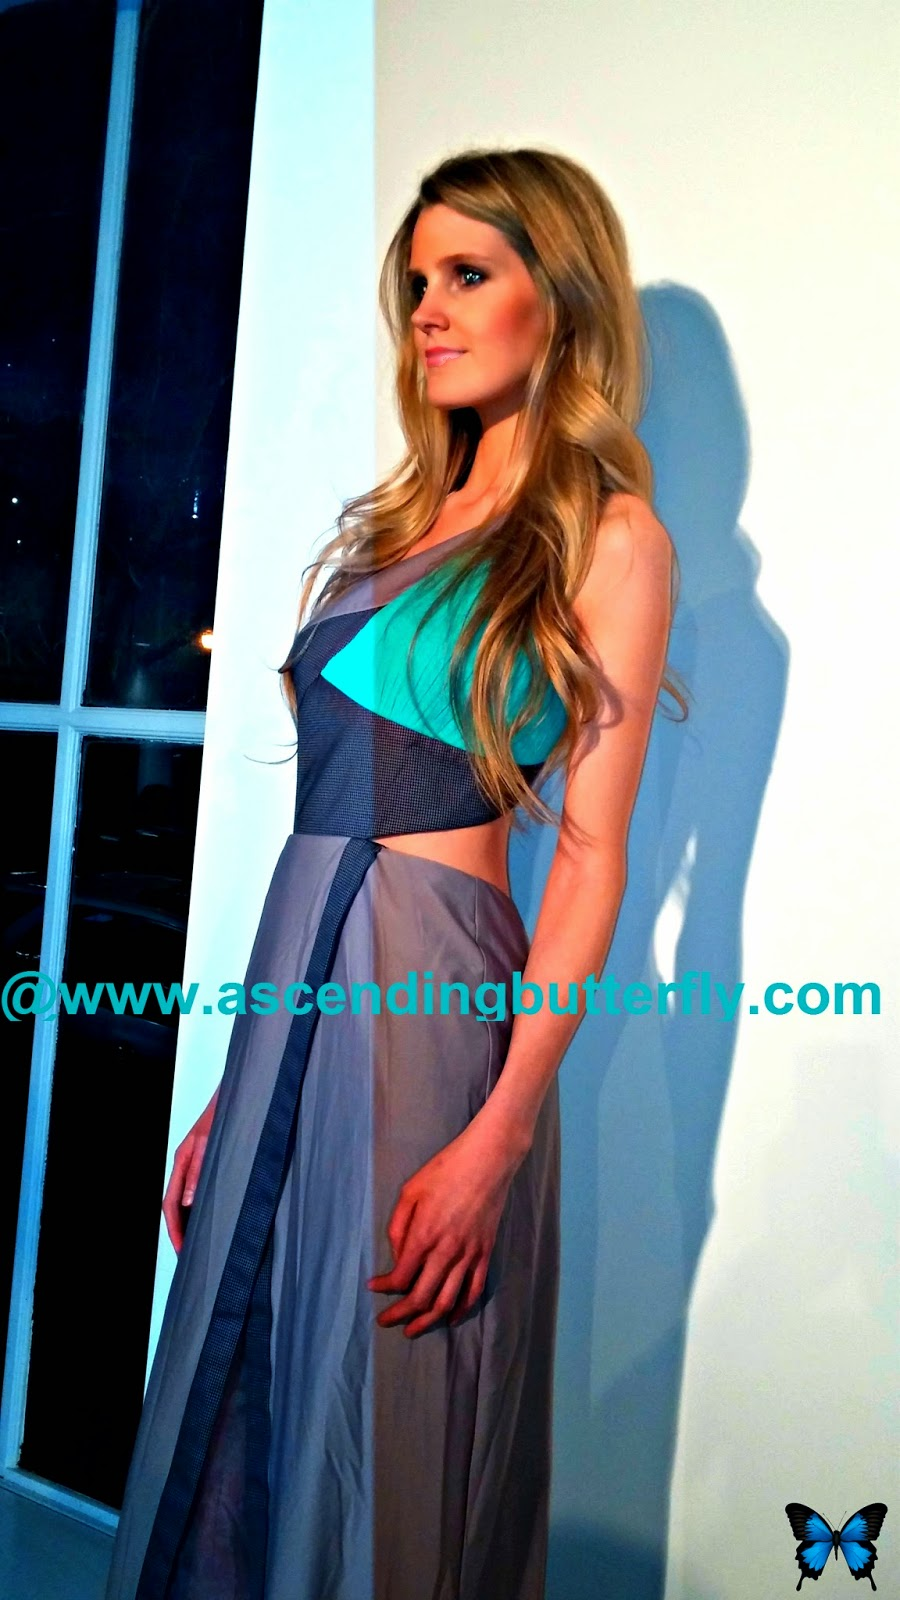 Gnossem Fashion Preview Maserati NYC Showroom February 2013, resort wear